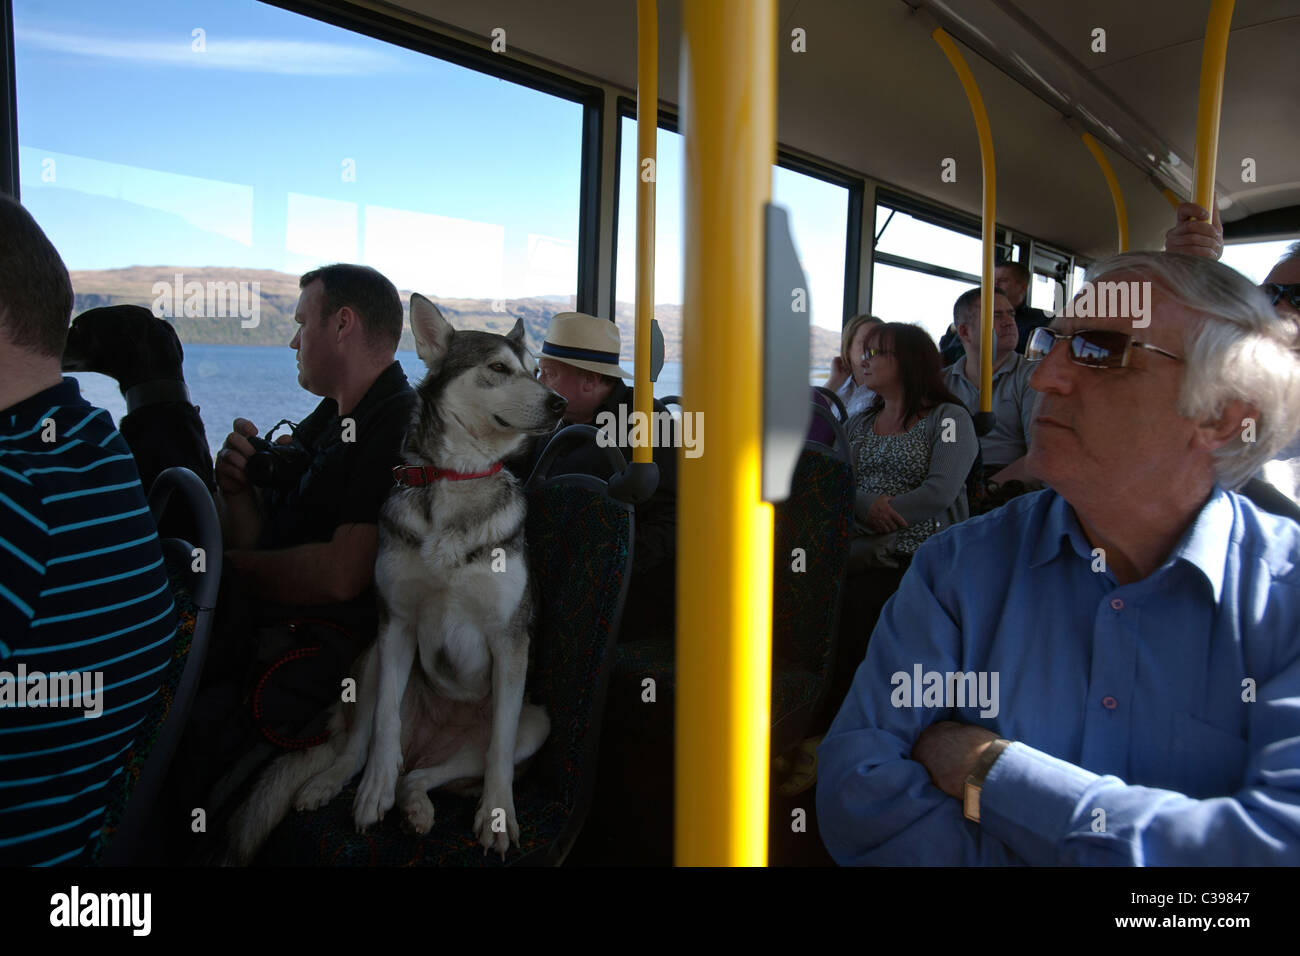 husky dog on a bus in mull in scotland - Stock Image